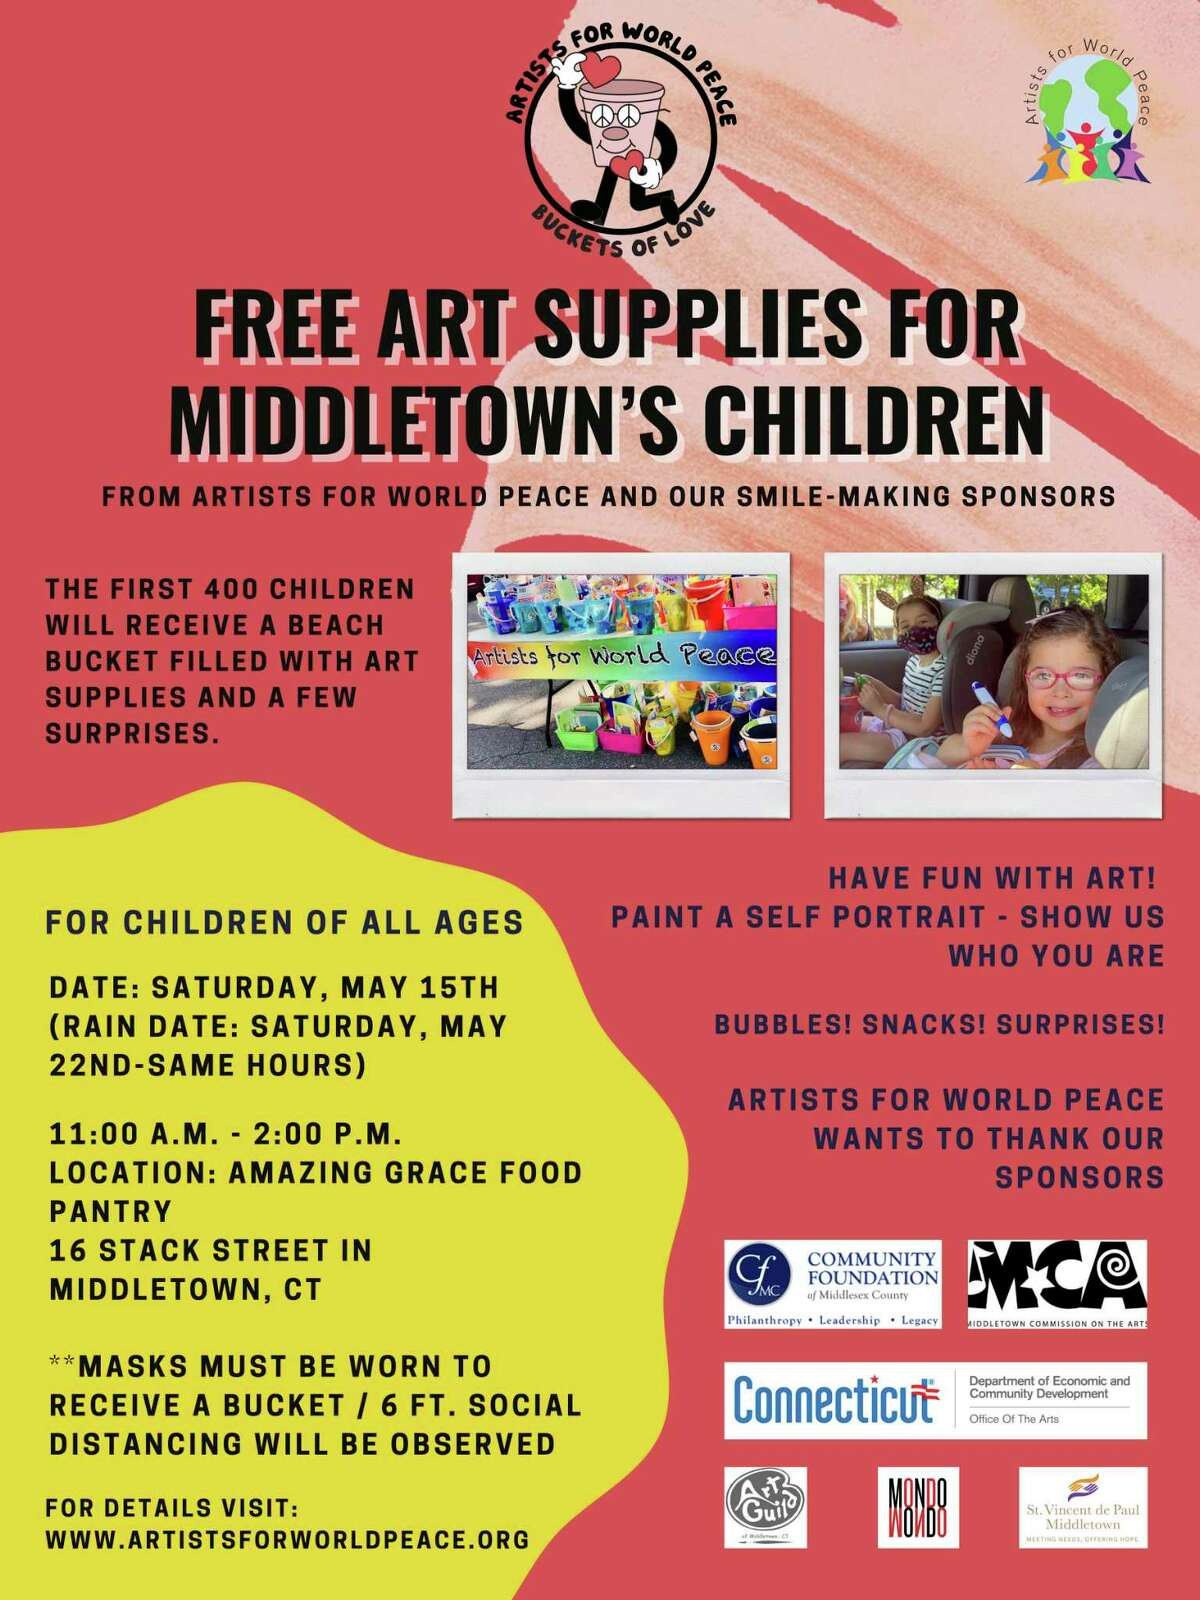 Artists for World Peace will host its 2nd Annual Buckets Of Love, 11 a.m.-2 p.m. May 15 at Amazing Grace Food Panty, 16 Stack St. Middletown. Free buckets filled with art supplies and surprises will be distributed to the first 400 children. An art tent where kids can paint a self portrait on a 6